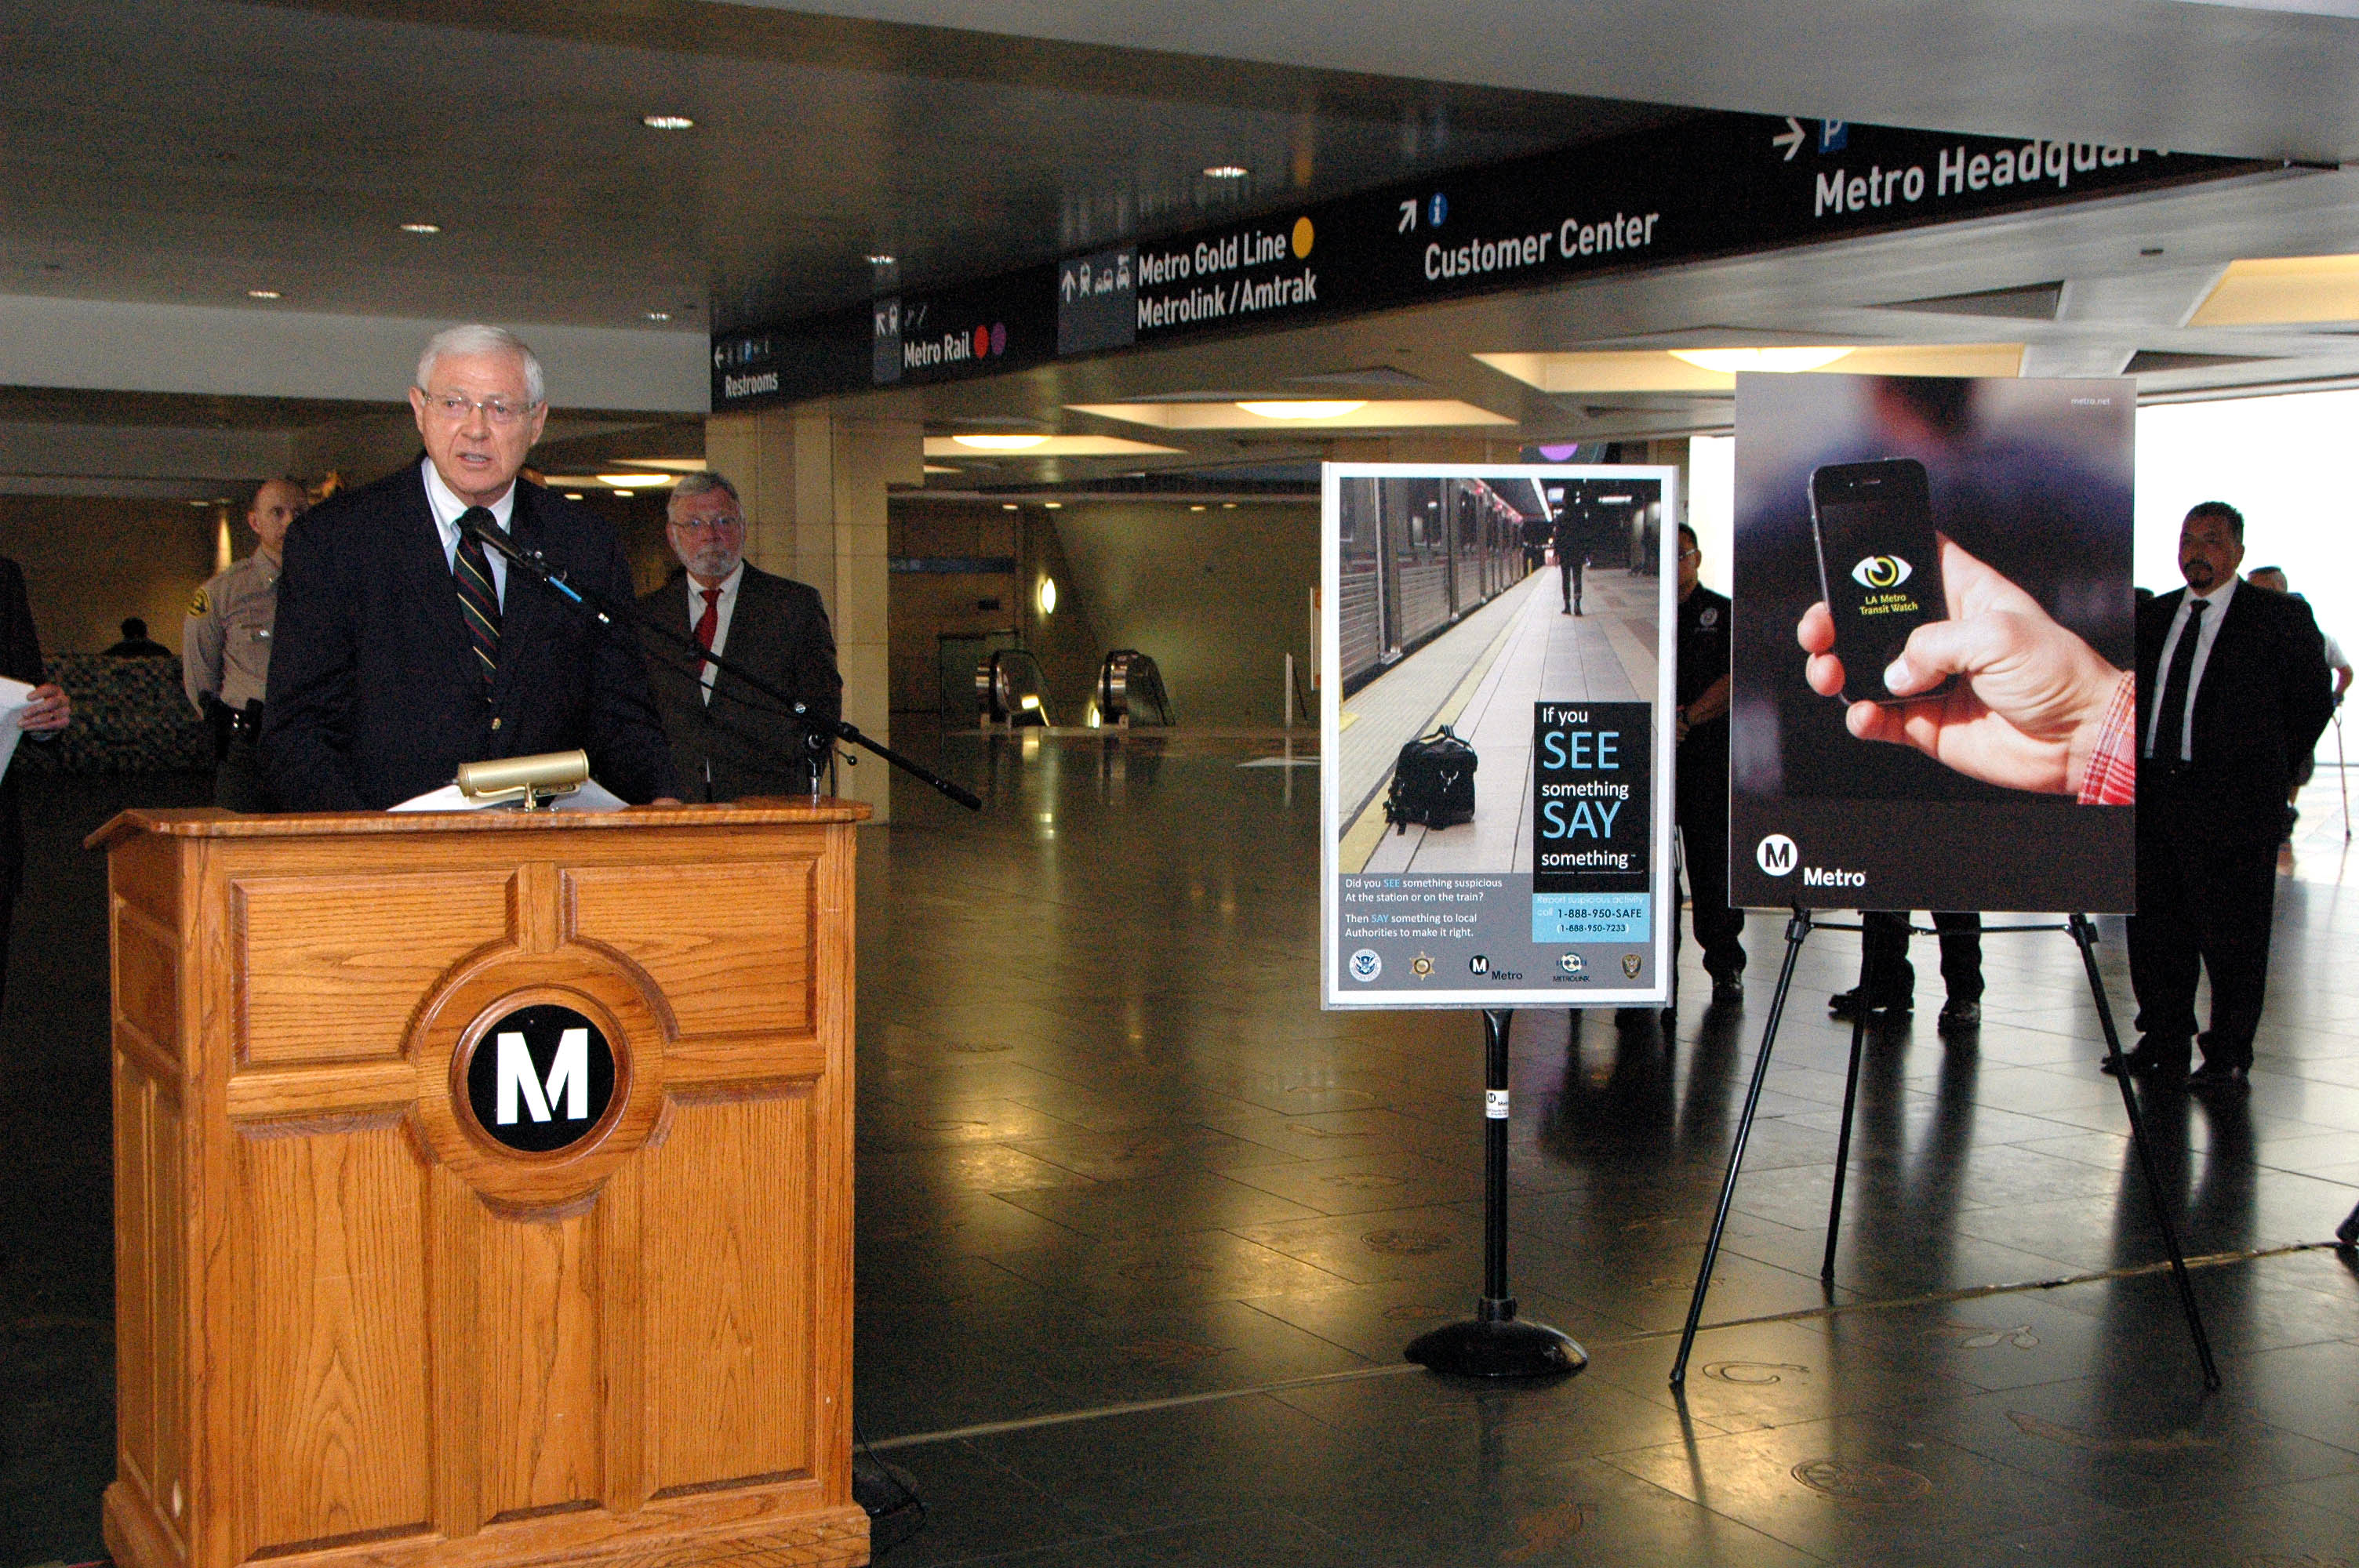 Metro Board of Directors Chairman Michael D. Antonovich introduces the new app. Photo by Luis Inzunza/Metro.